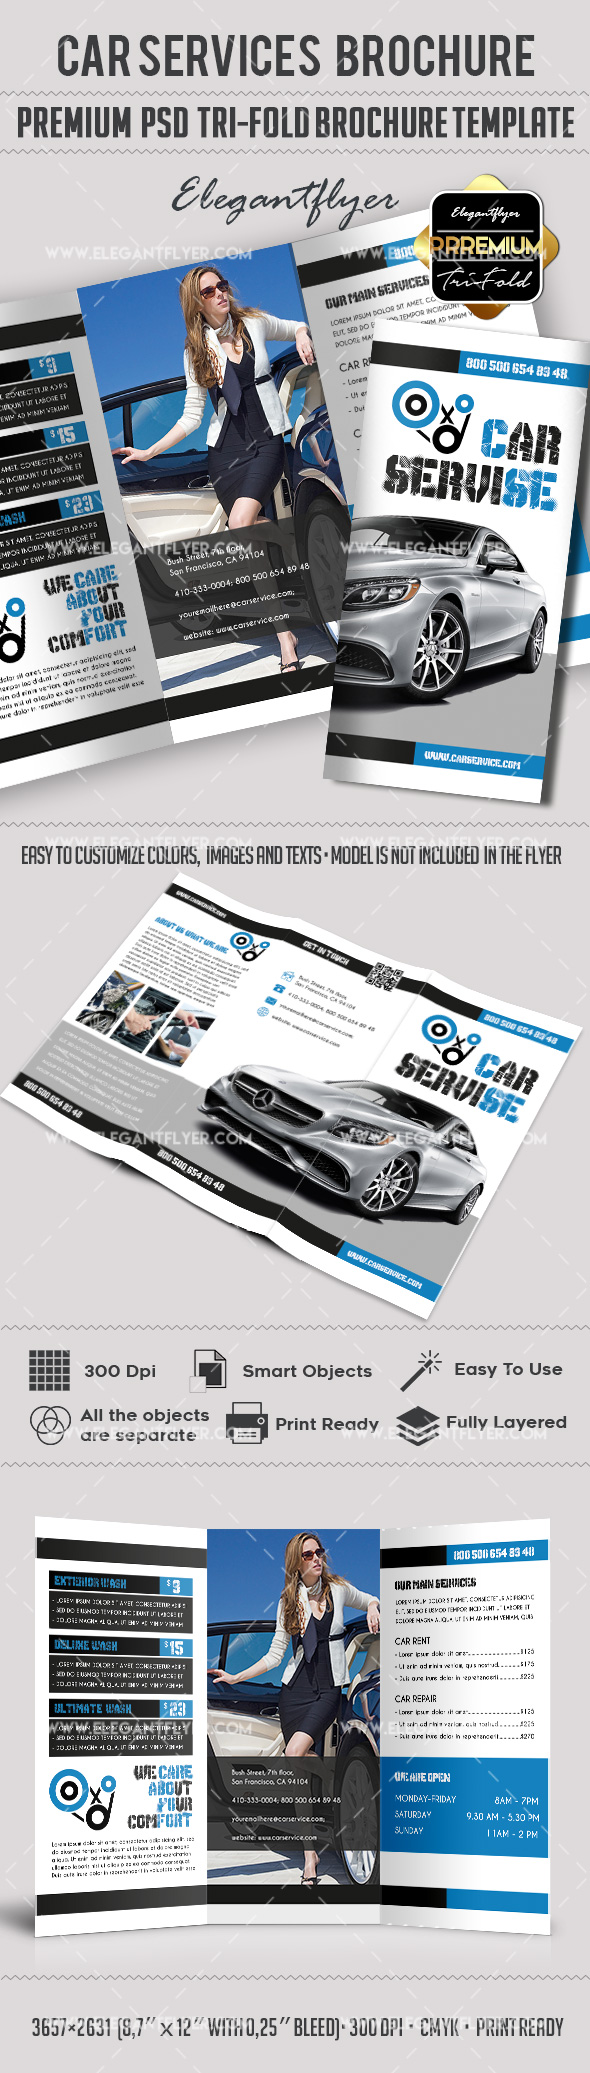 Car Services – Premium Tri-Fold PSD Brochure Template